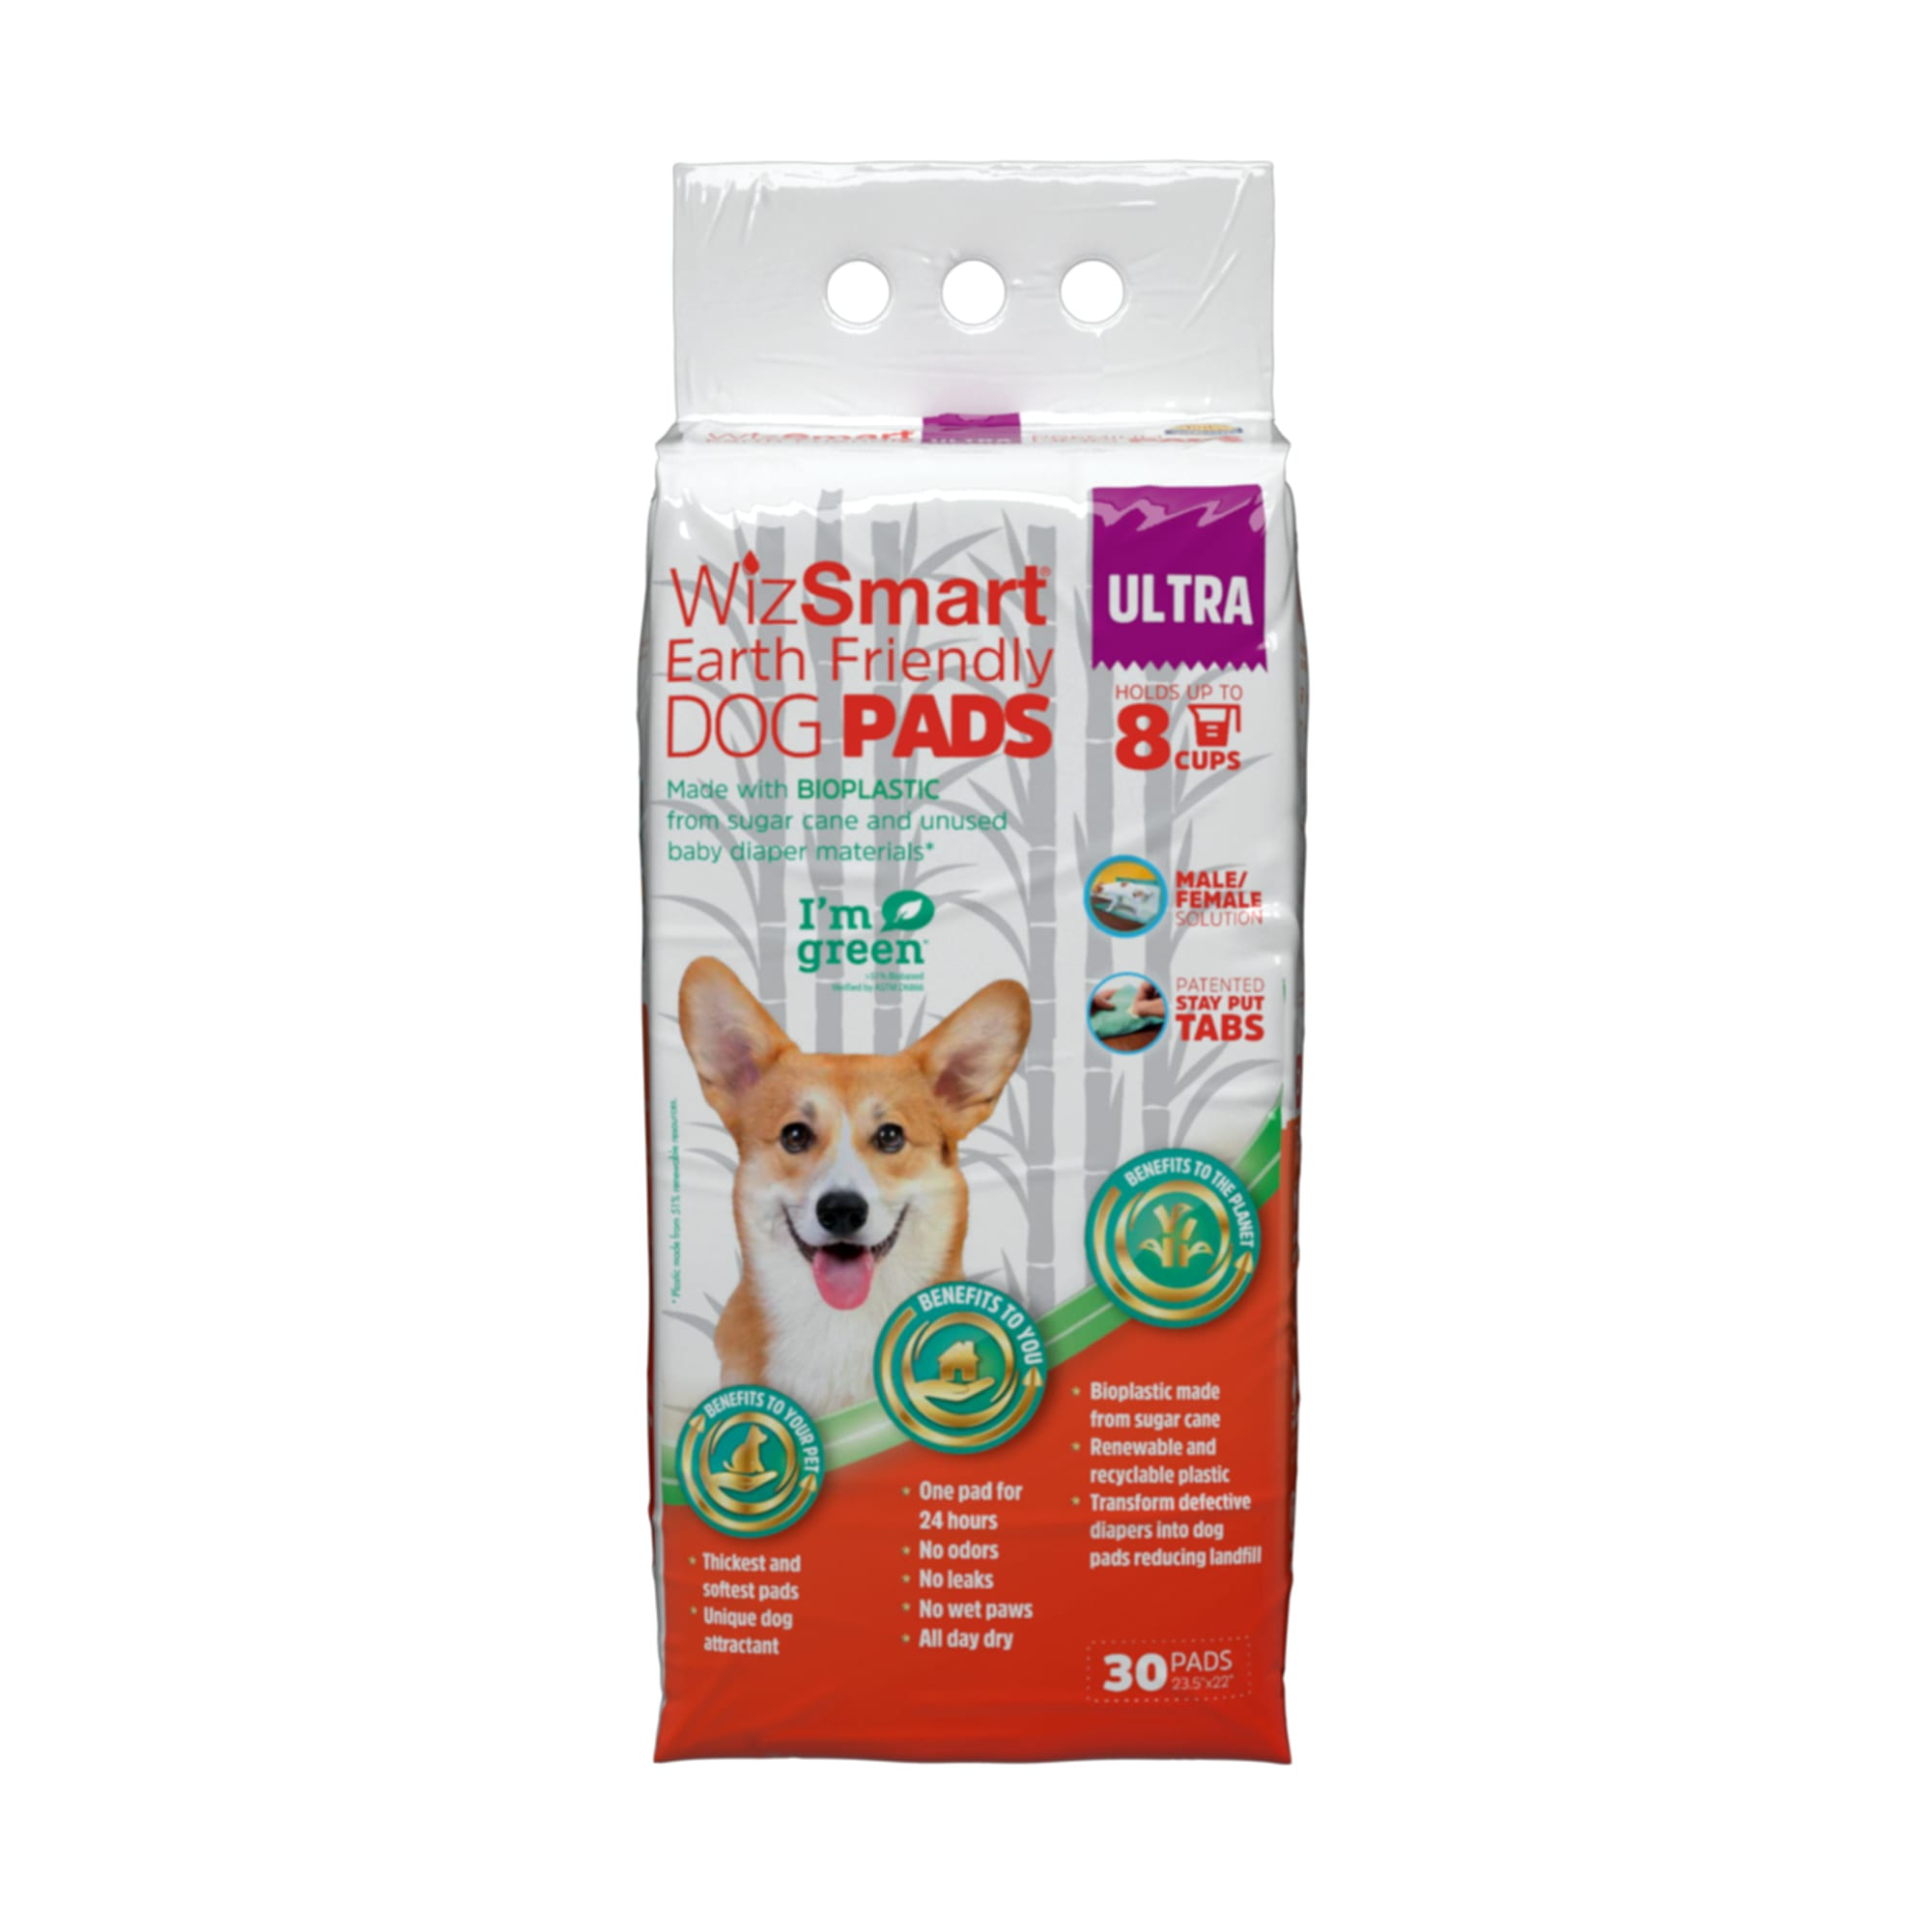 WizSmart Earth Friendly Premium Ultra Dry Dog Pads